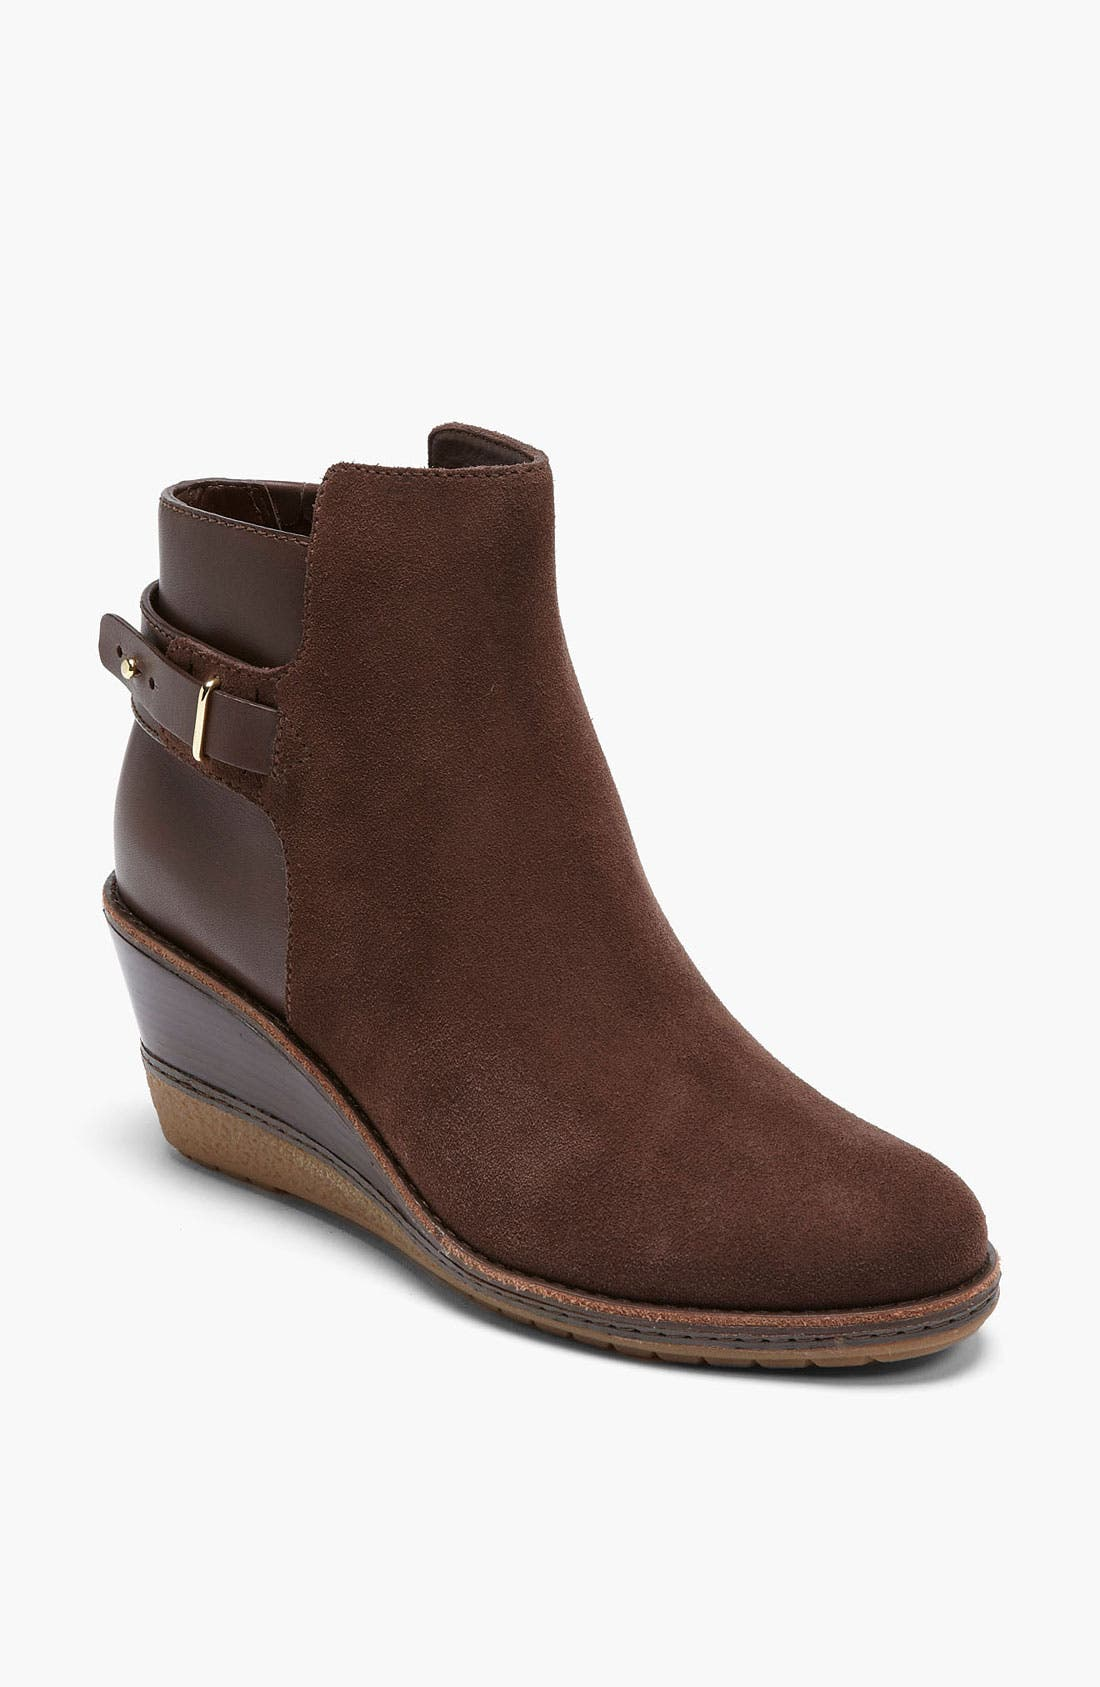 Main Image - Cole Haan 'Rayna' Waterpoof Ankle Boot